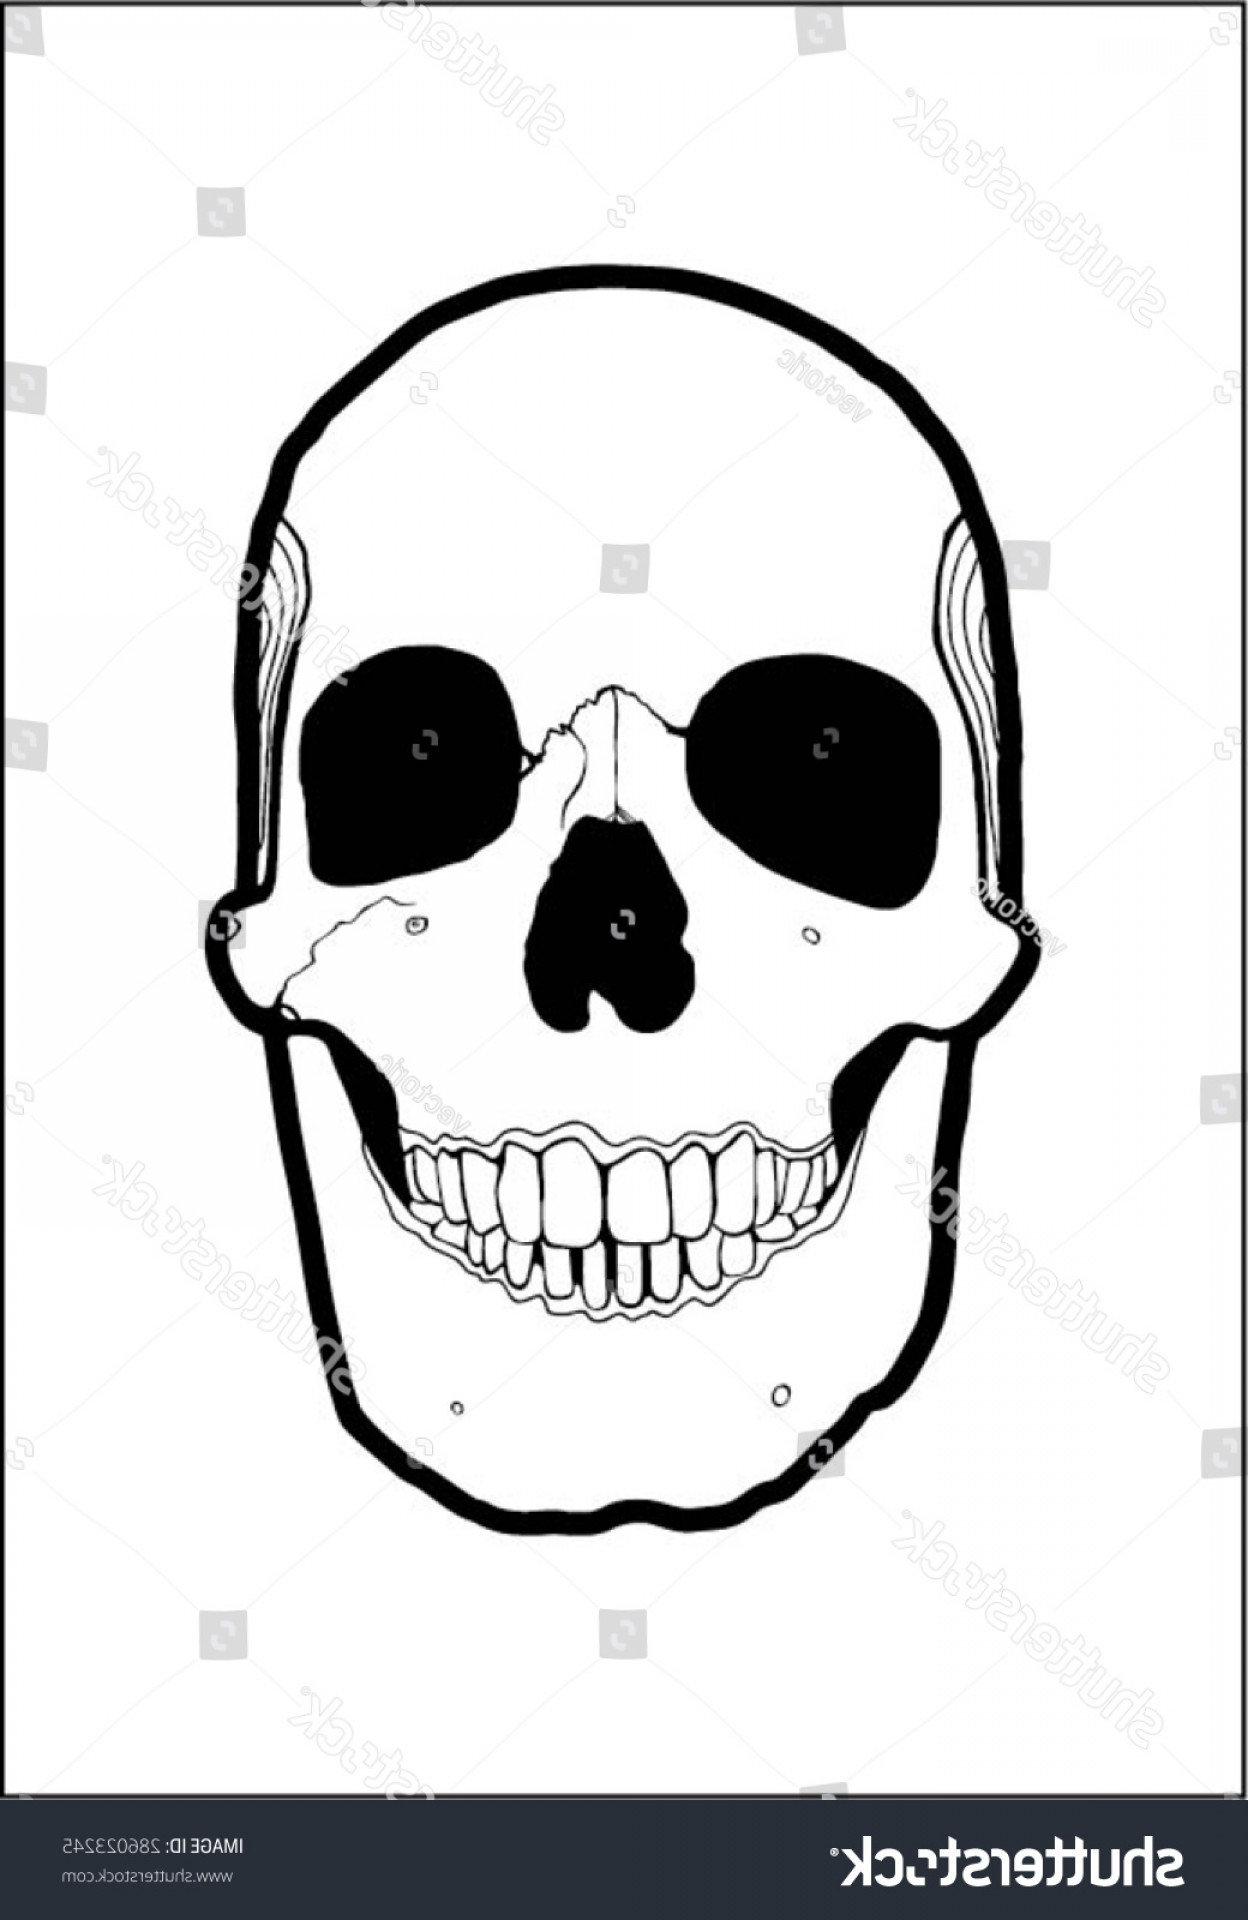 Cool Skull Vector: Cool Skull Illustration Vector Warning